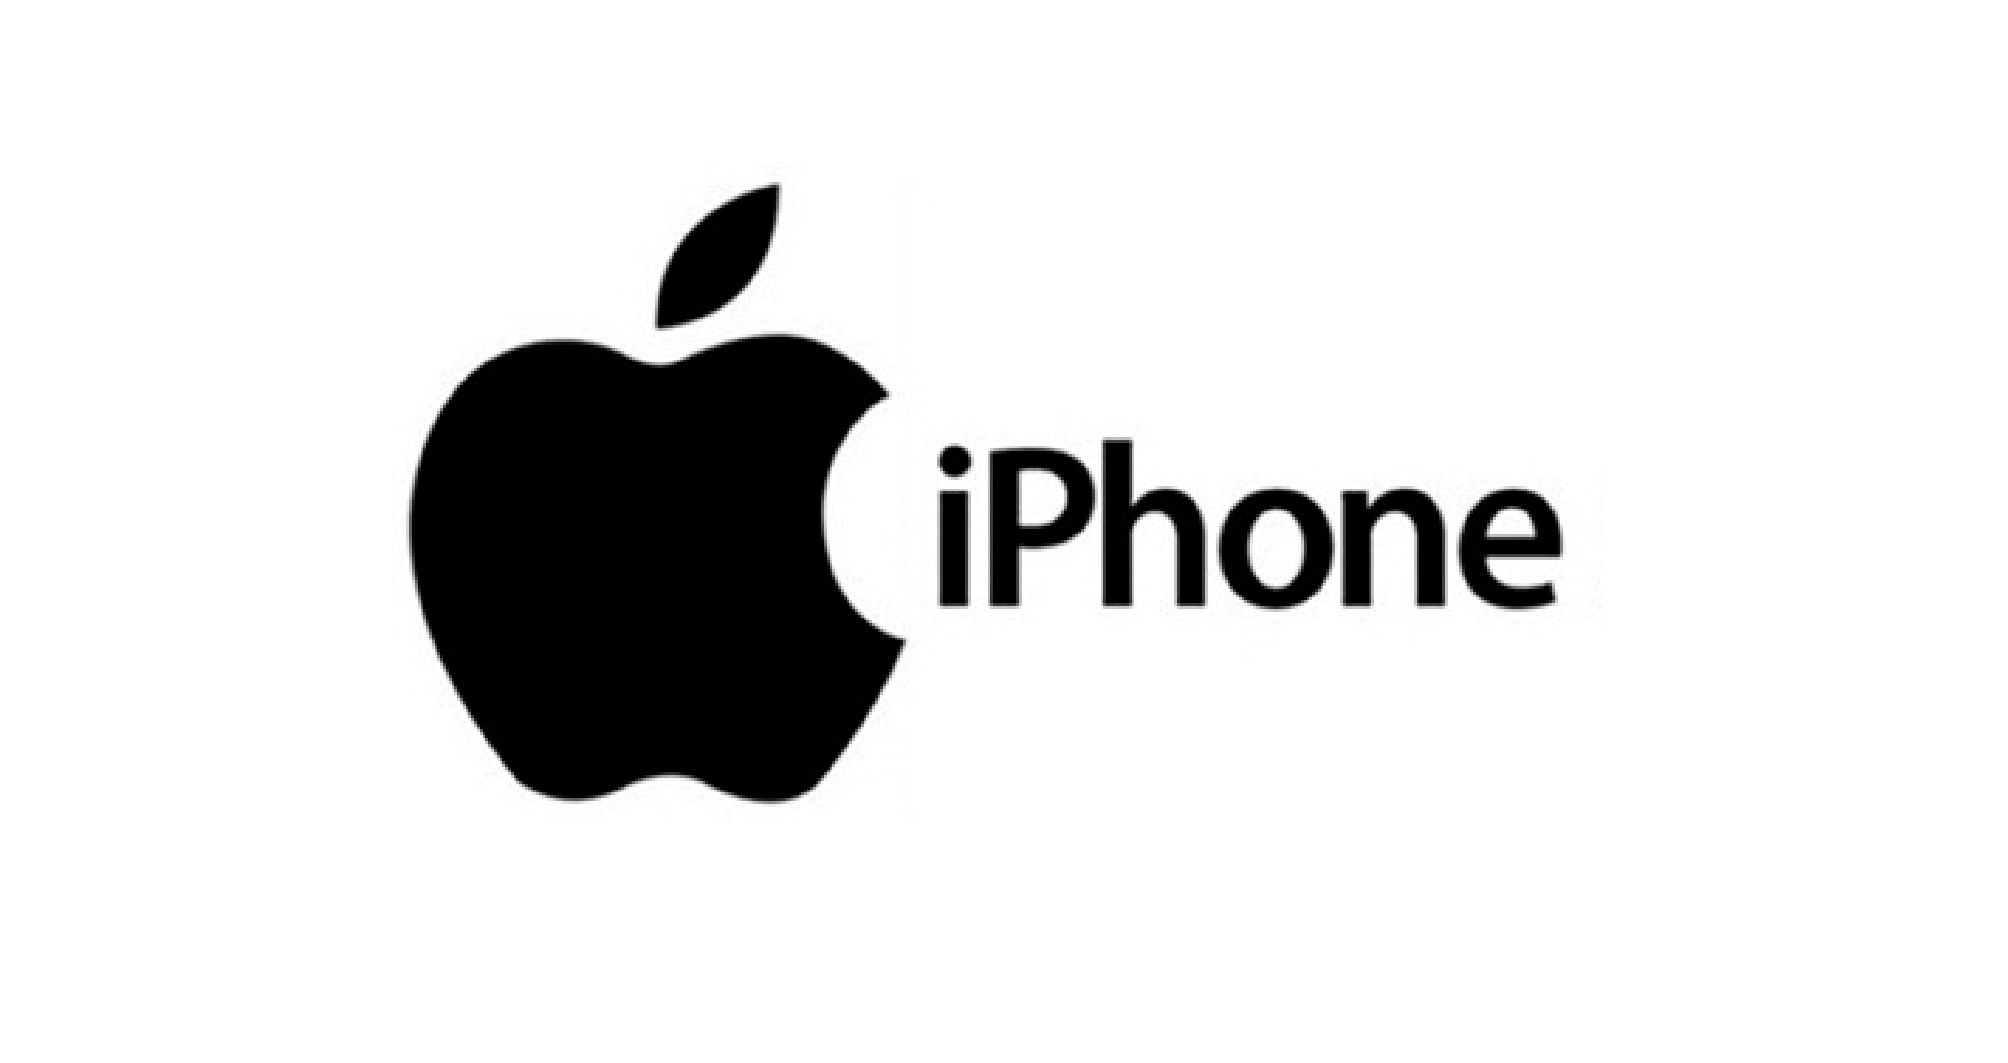 apple iphone logo png